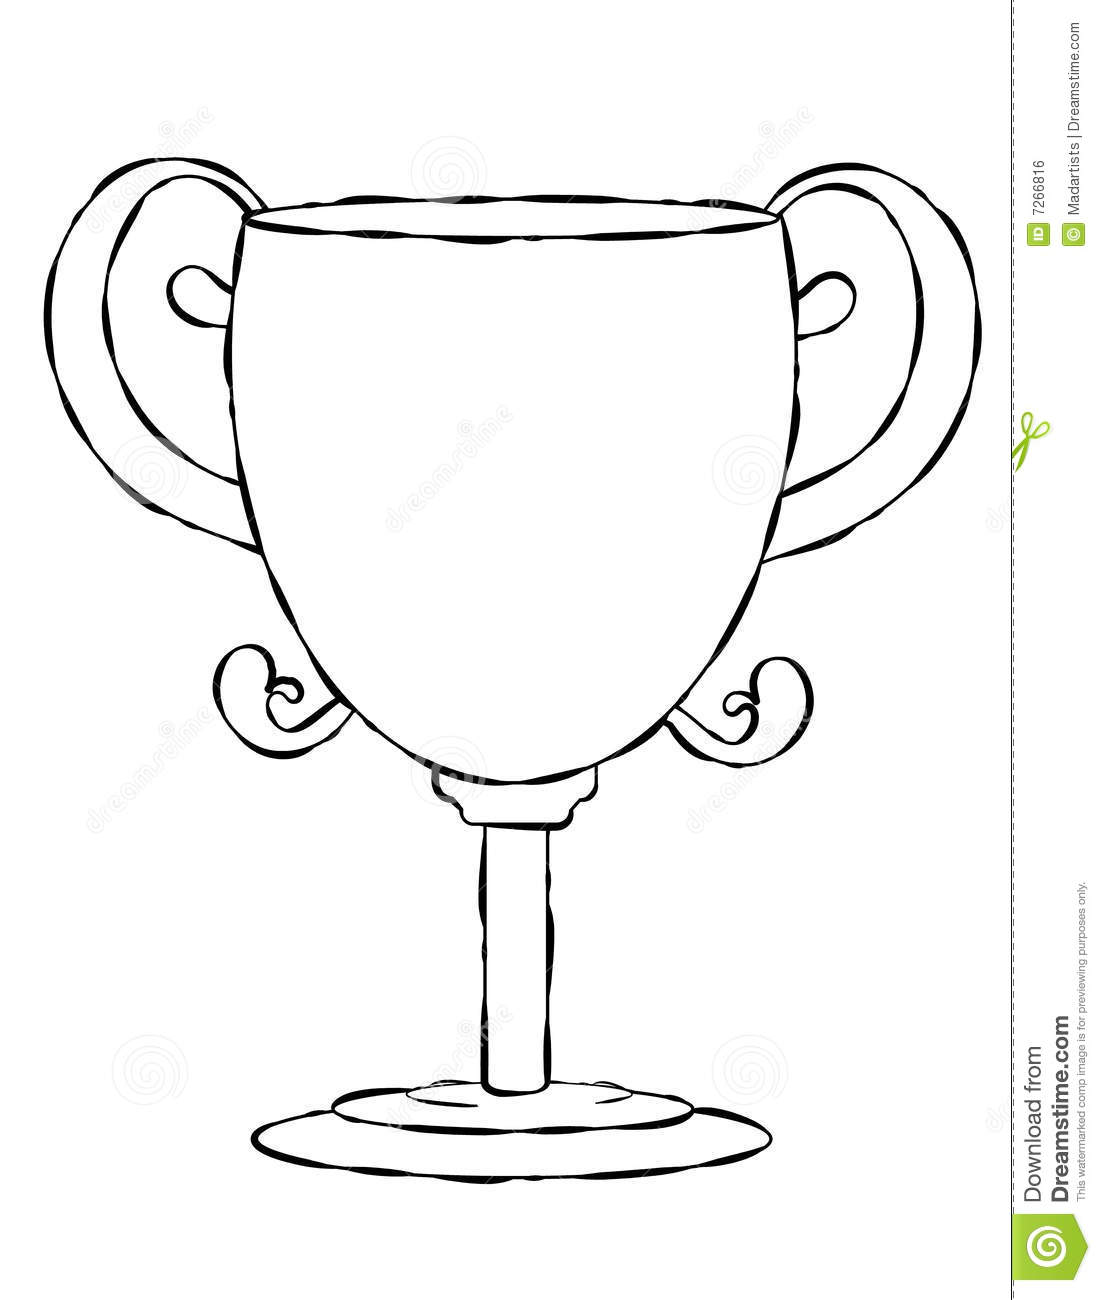 Blank Face Trophy Line Art Royalty Free Stock Image